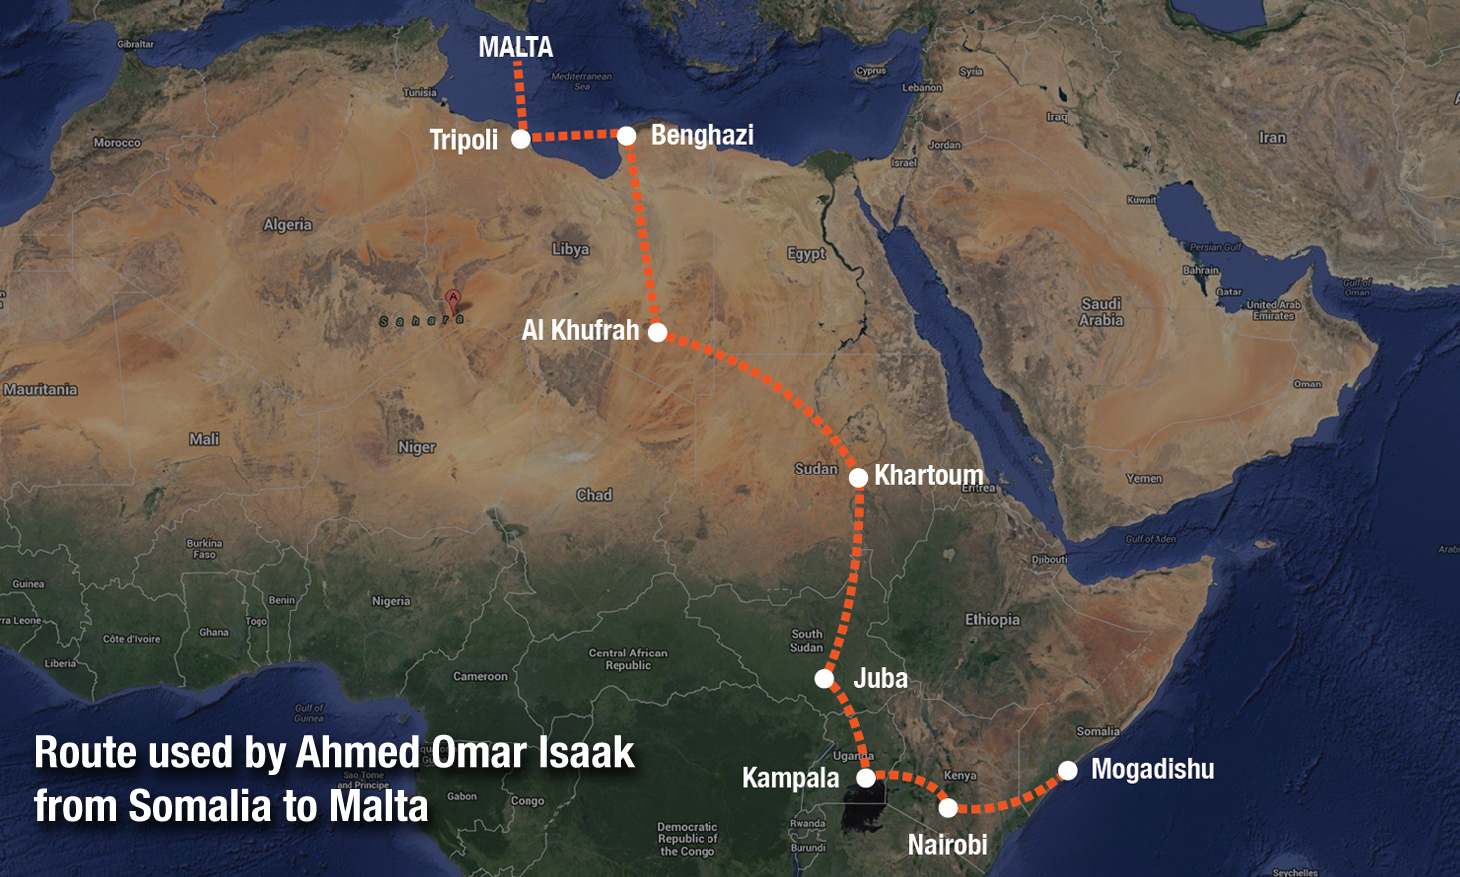 Route used by Ahmed Omar Isaak from Somalia to Malta